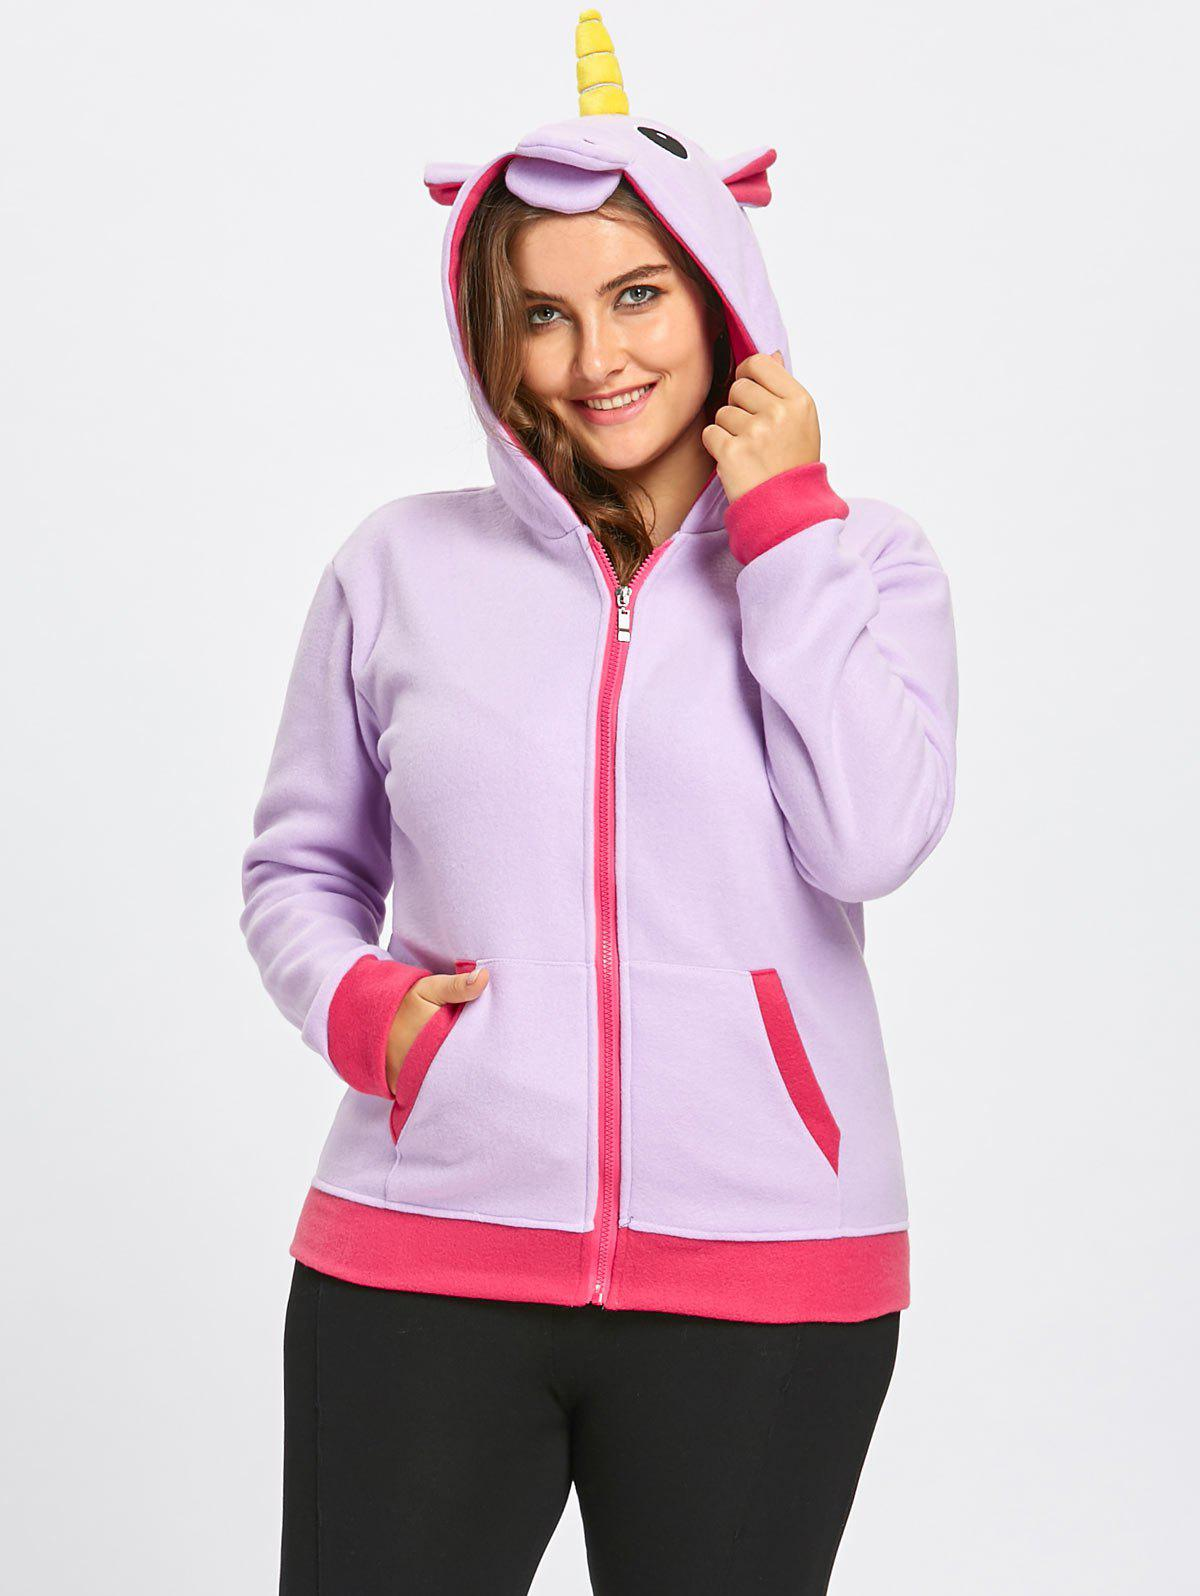 Fleece Plus Size Unicorn Zipper Hoodie with Pocket plus size plain drop shoulder hoodie with pocket